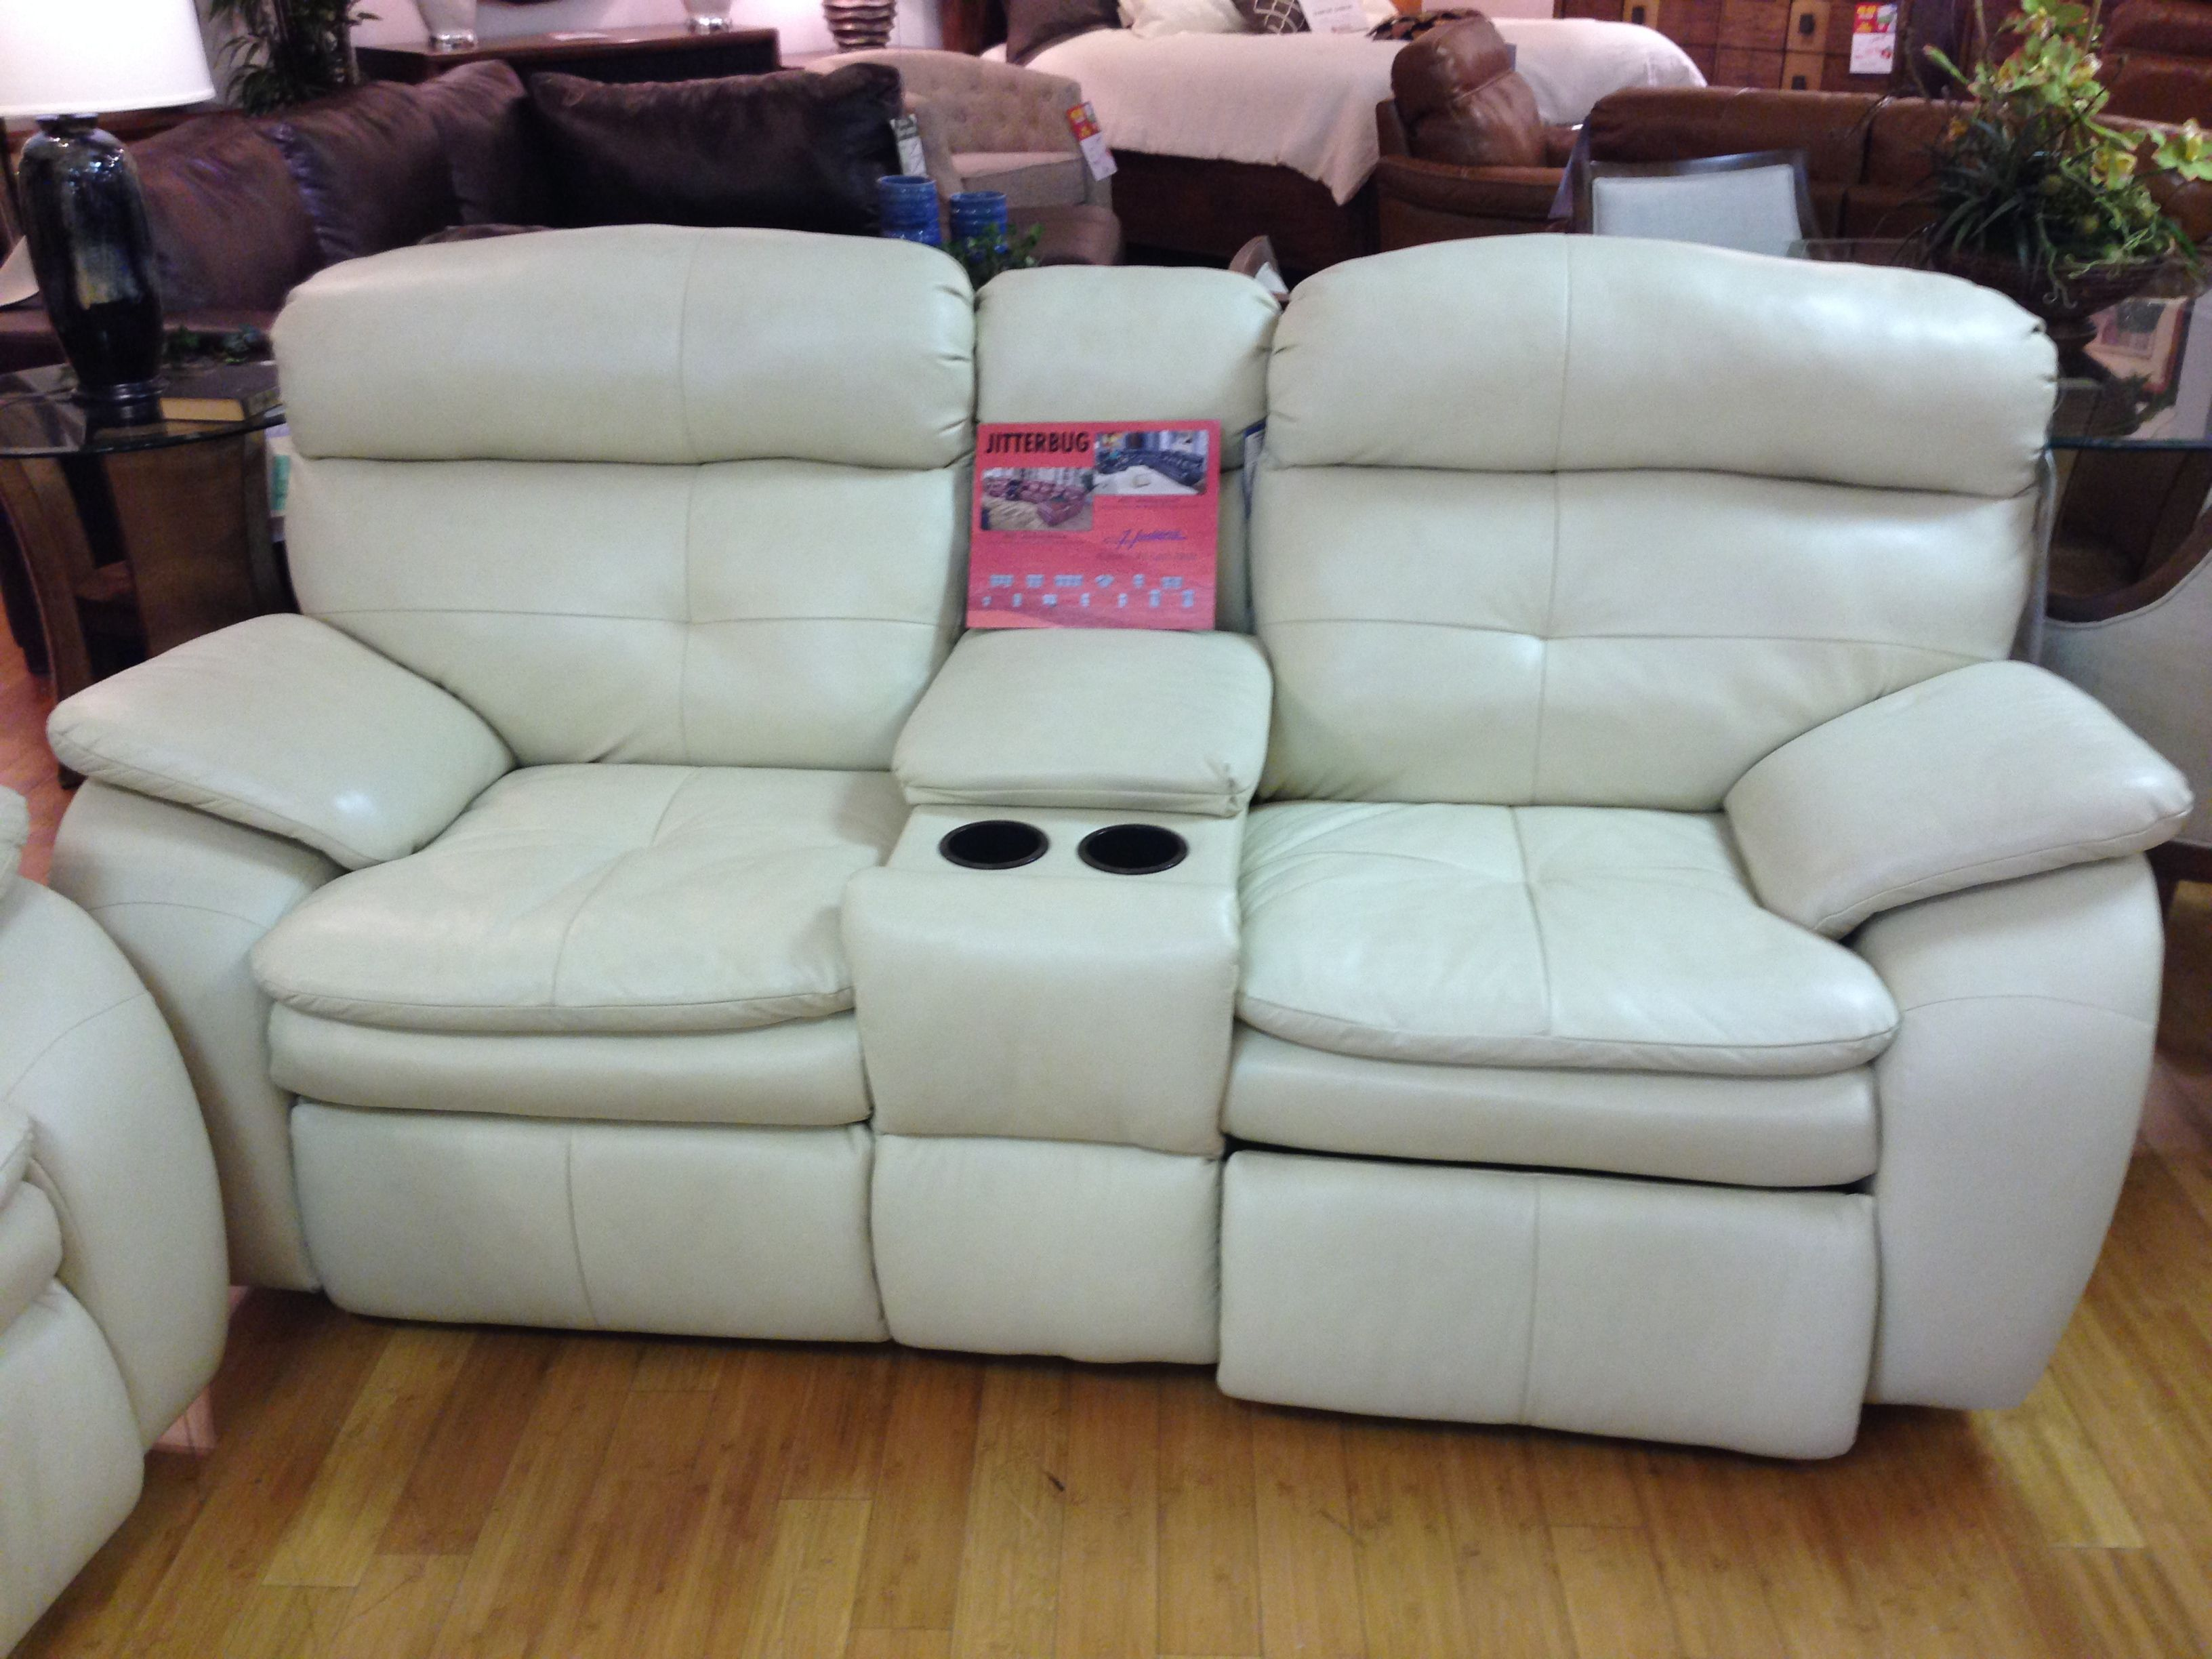 Leather Love seat with Console by Southern Motion Love